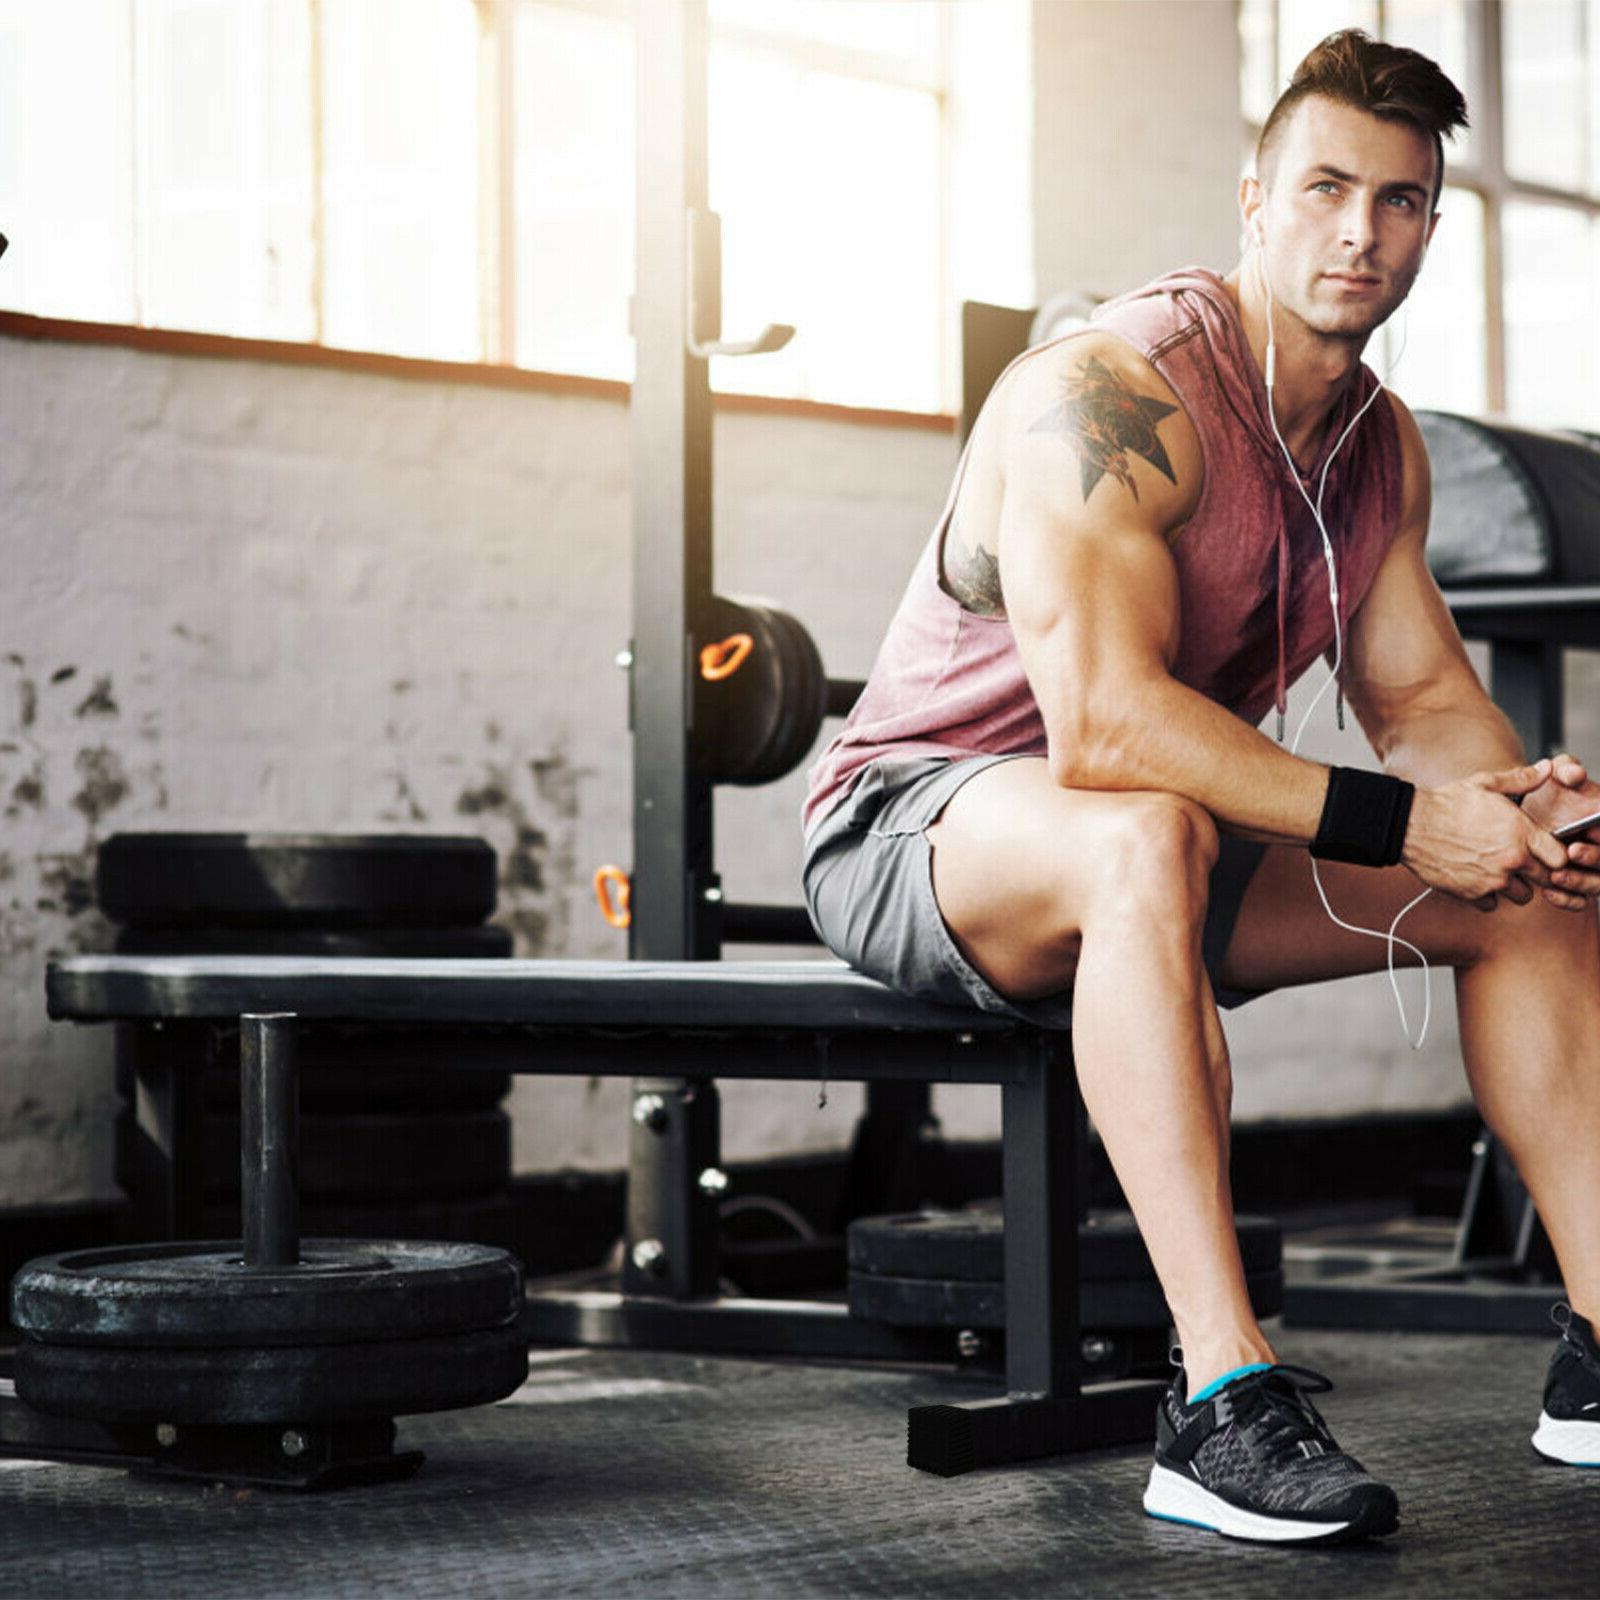 Strength Flat Weight Lifting Gym Workout Fitness Exercise